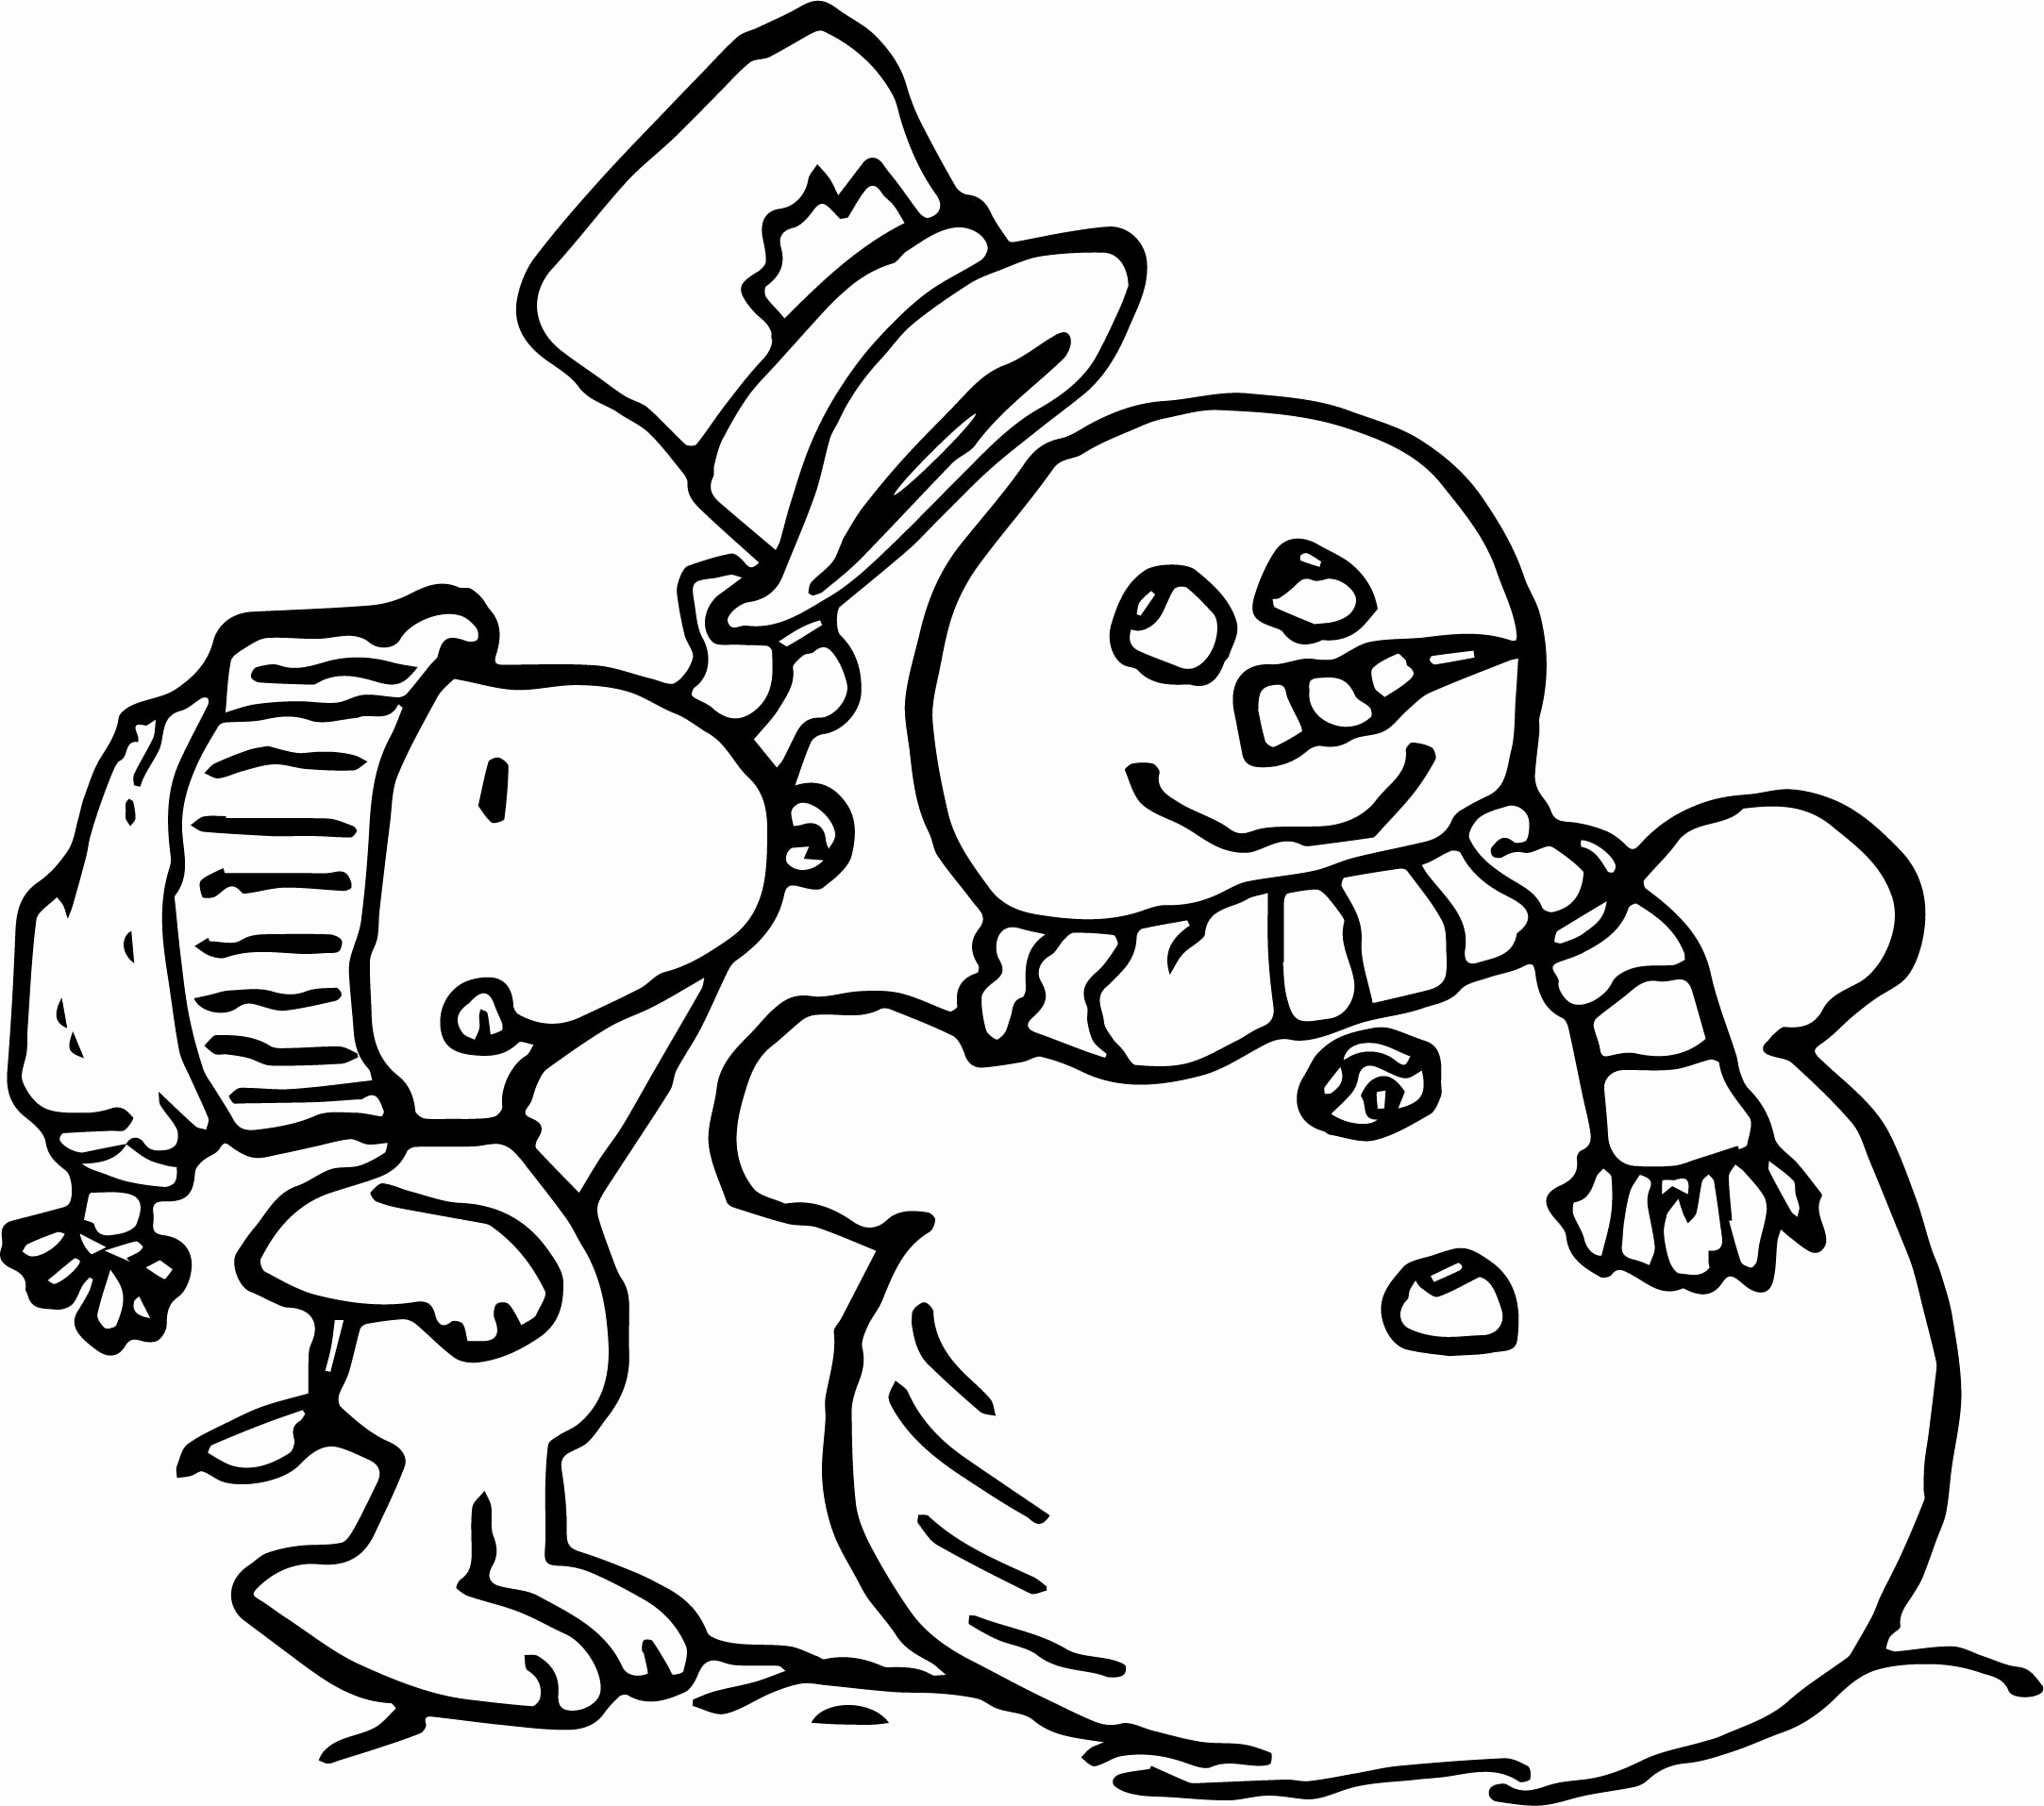 Snow Day Coloring Page At Getcolorings